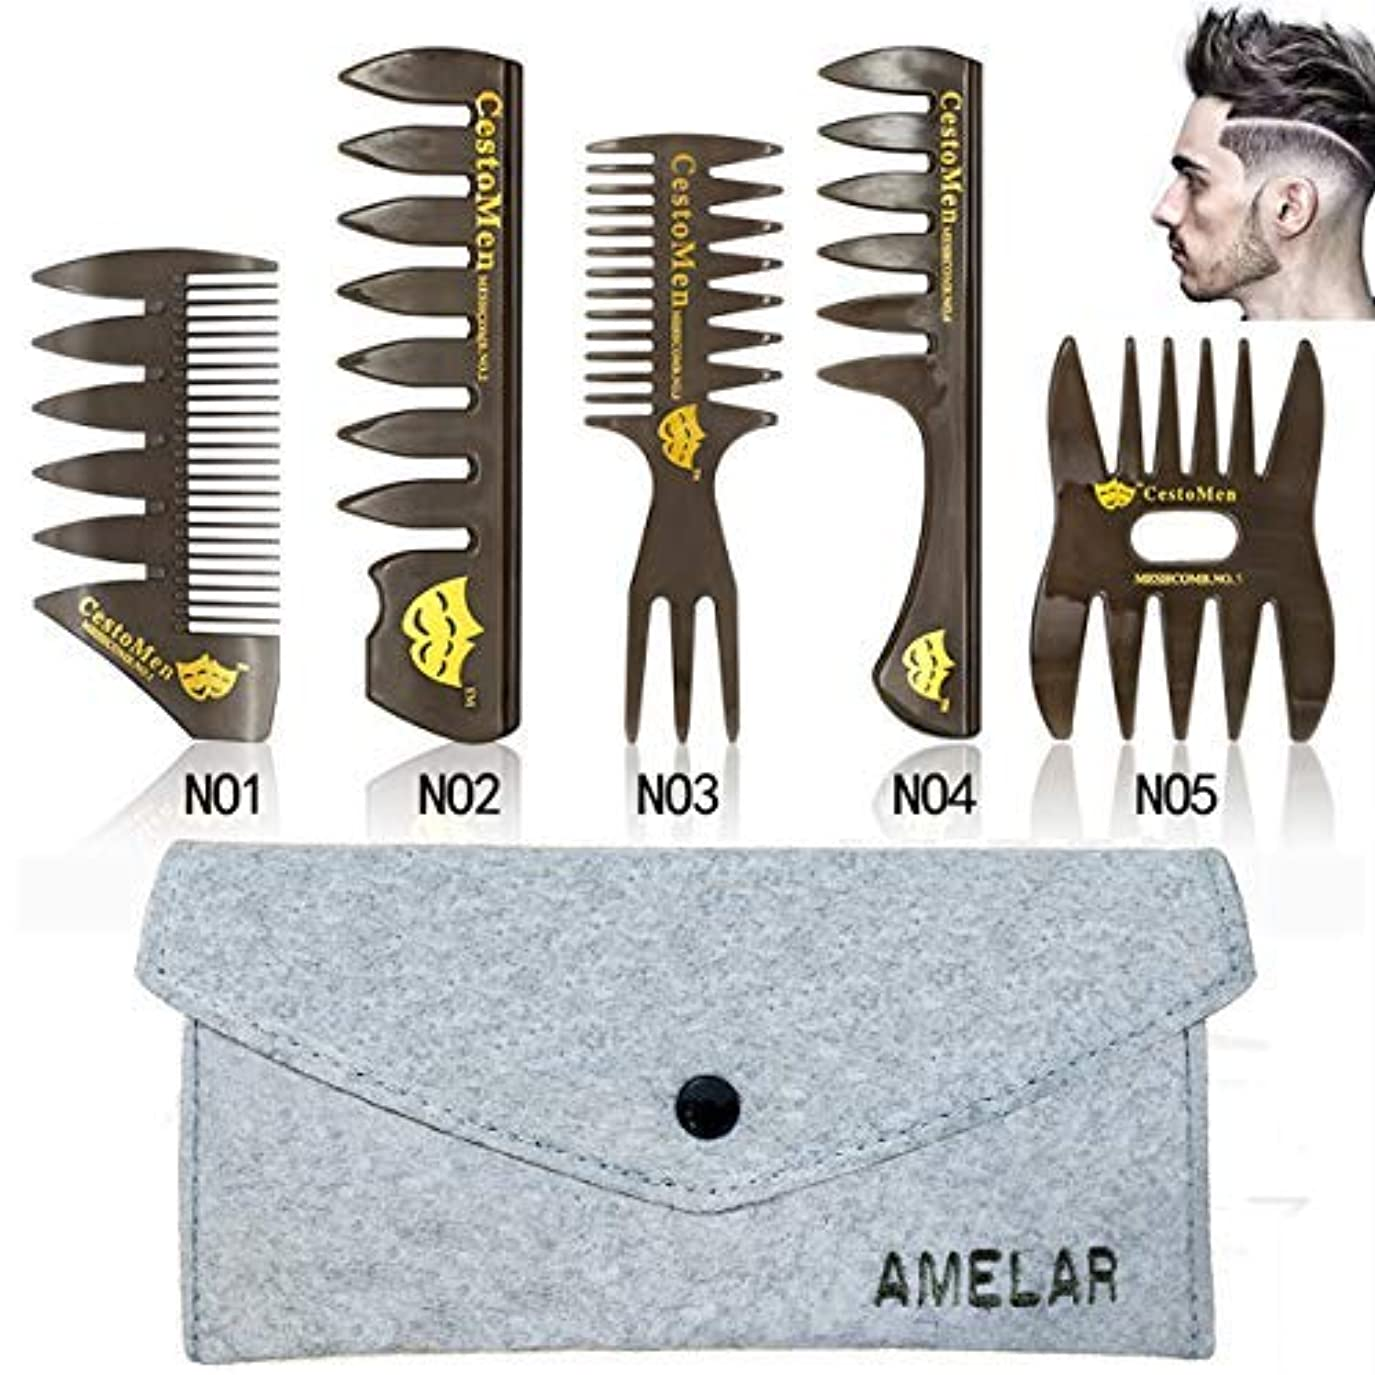 6 PCS Hair Comb Styling Set Barber Hairstylist Accessories,Professional Shaping & Wet Pick Barber Brush Tools,...